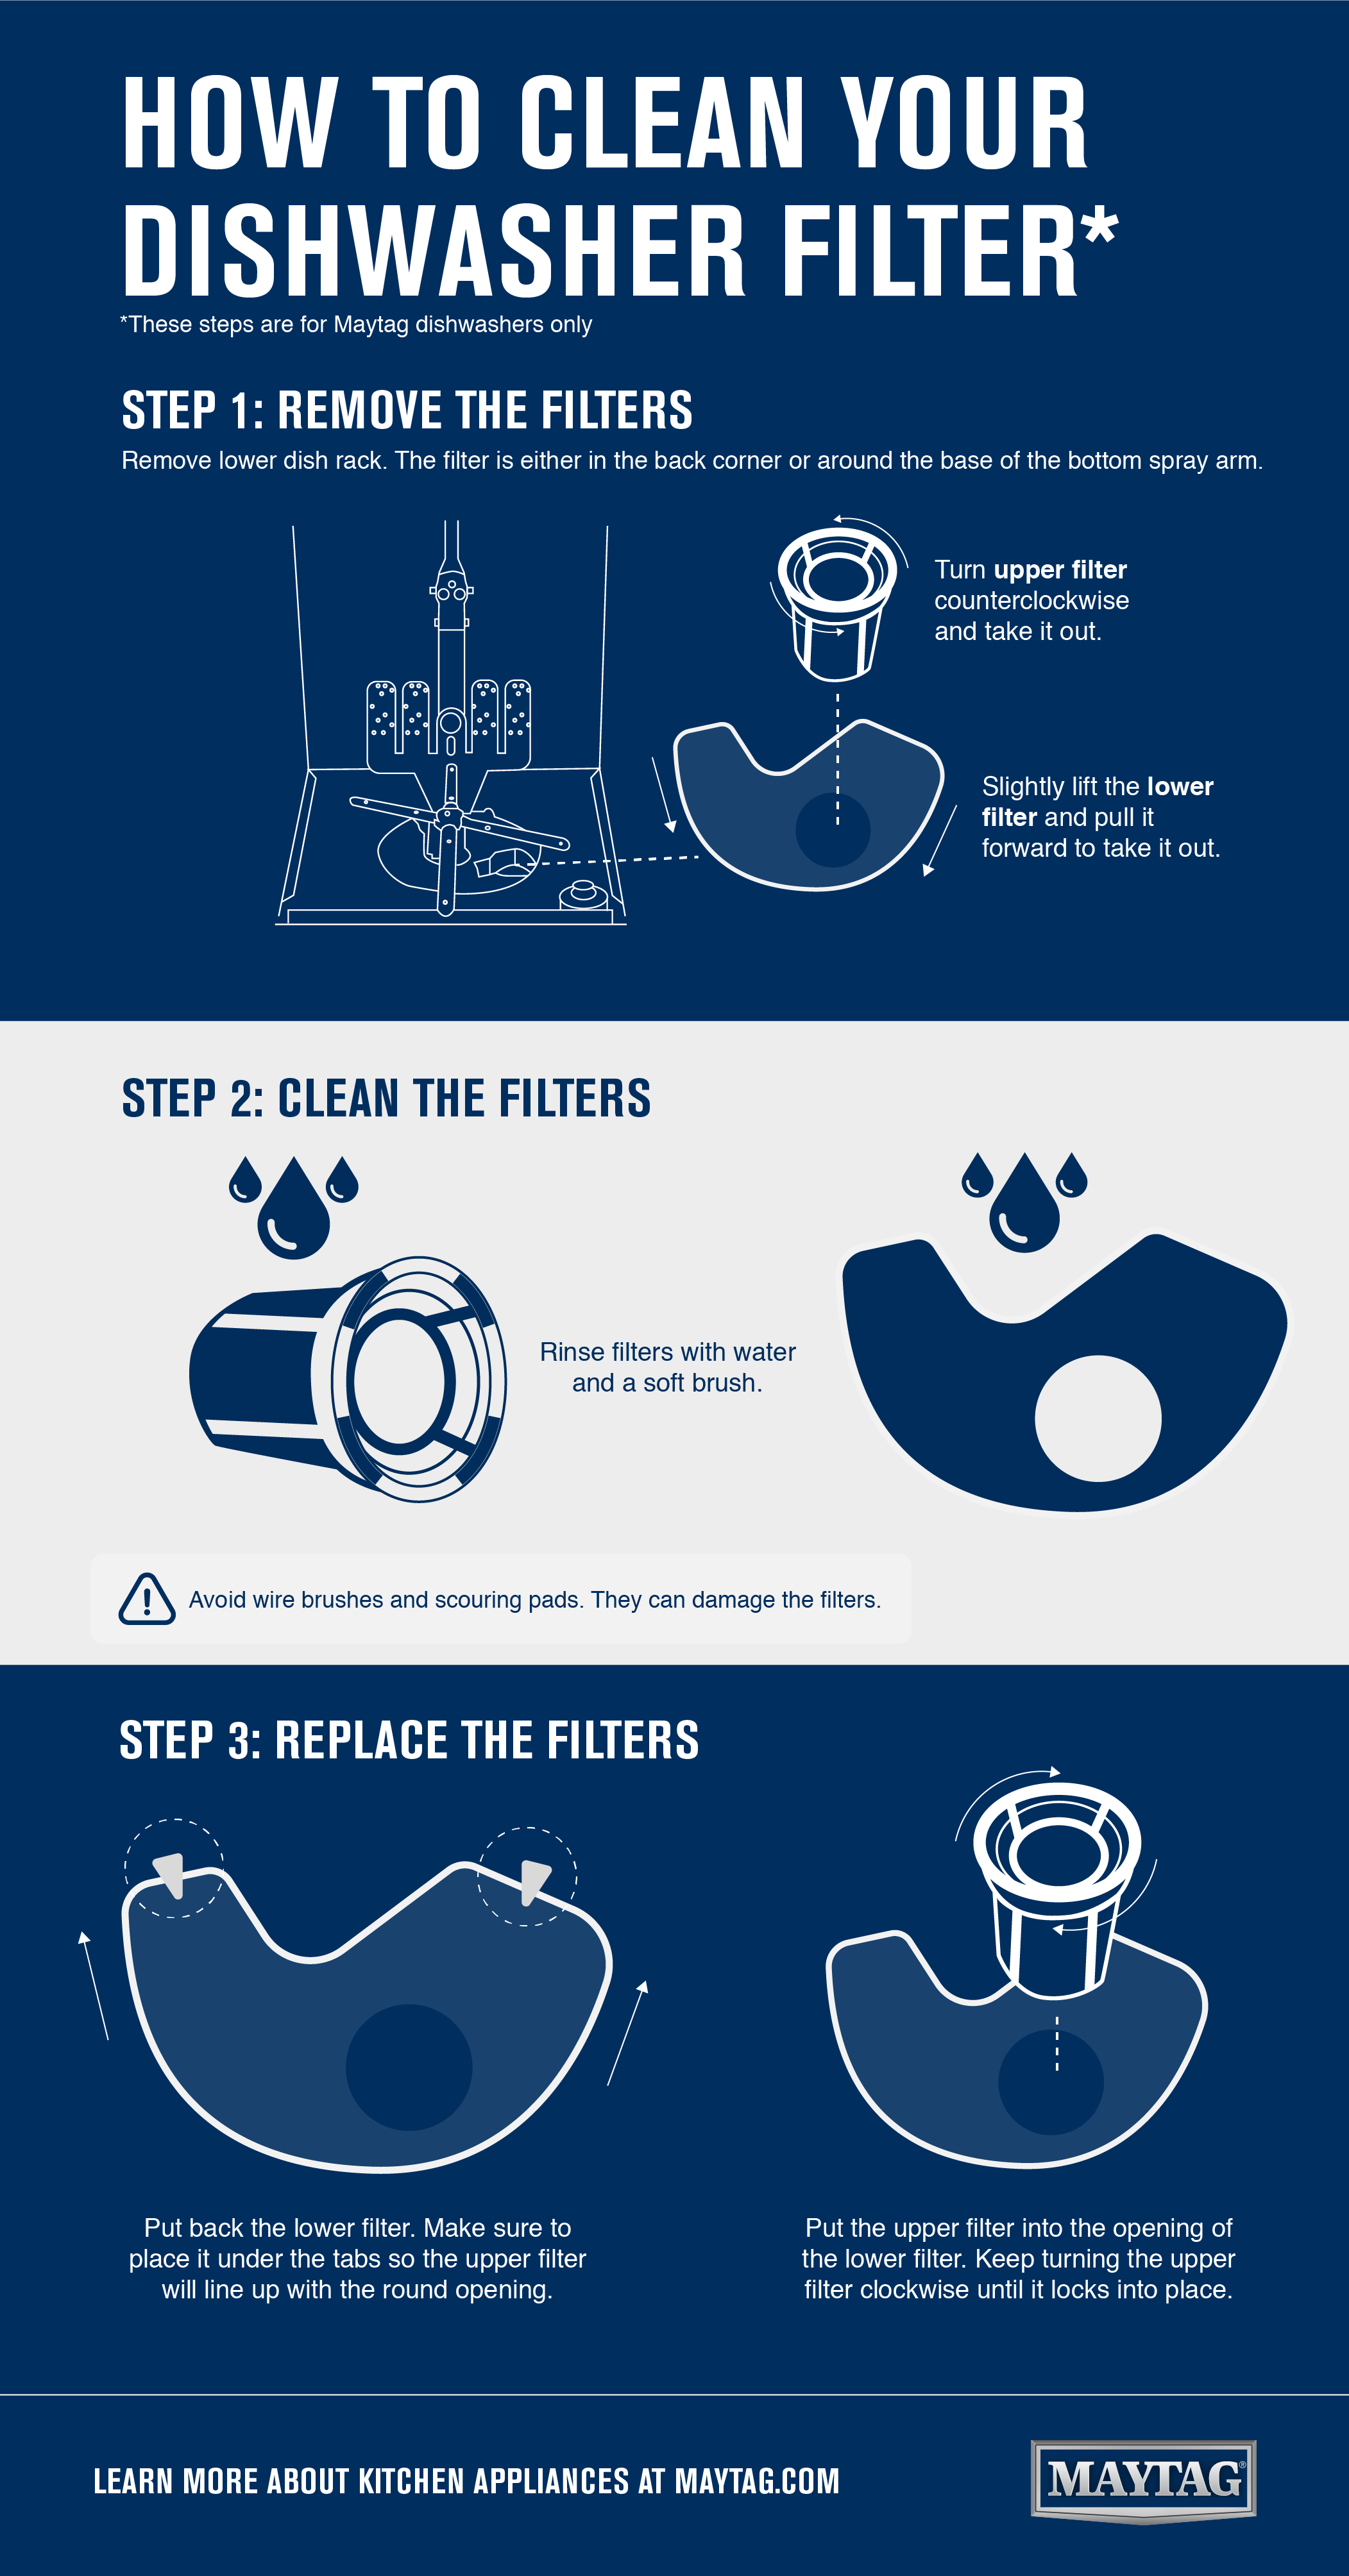 How To Clean A Dishwasher Filter A Step By Step Guide Maytag Cleaning Your Dishwasher Dishwasher Filter Clean Dishwasher